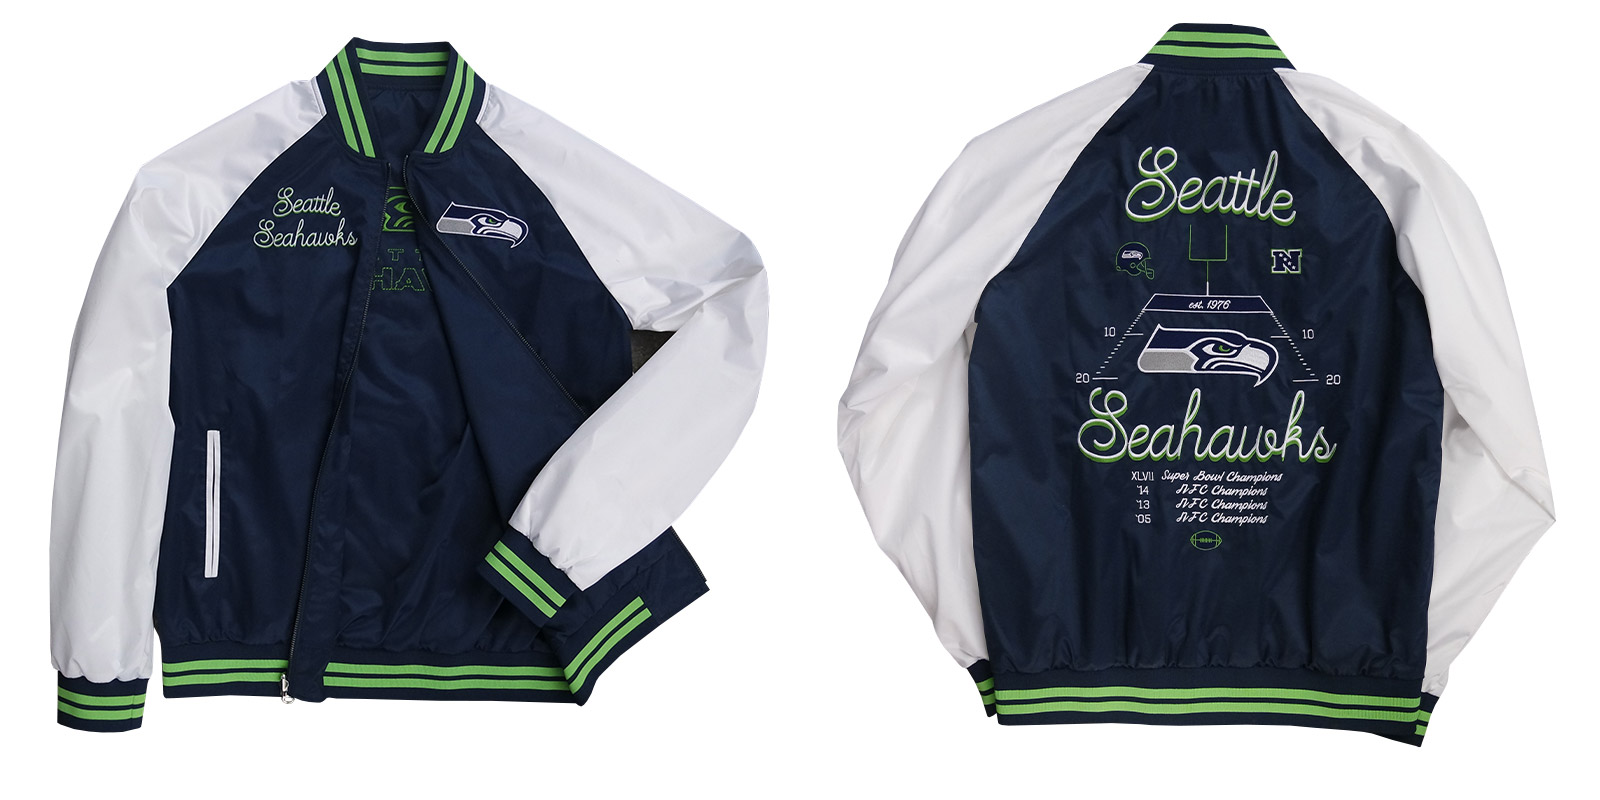 SeahawksJacket.jpg